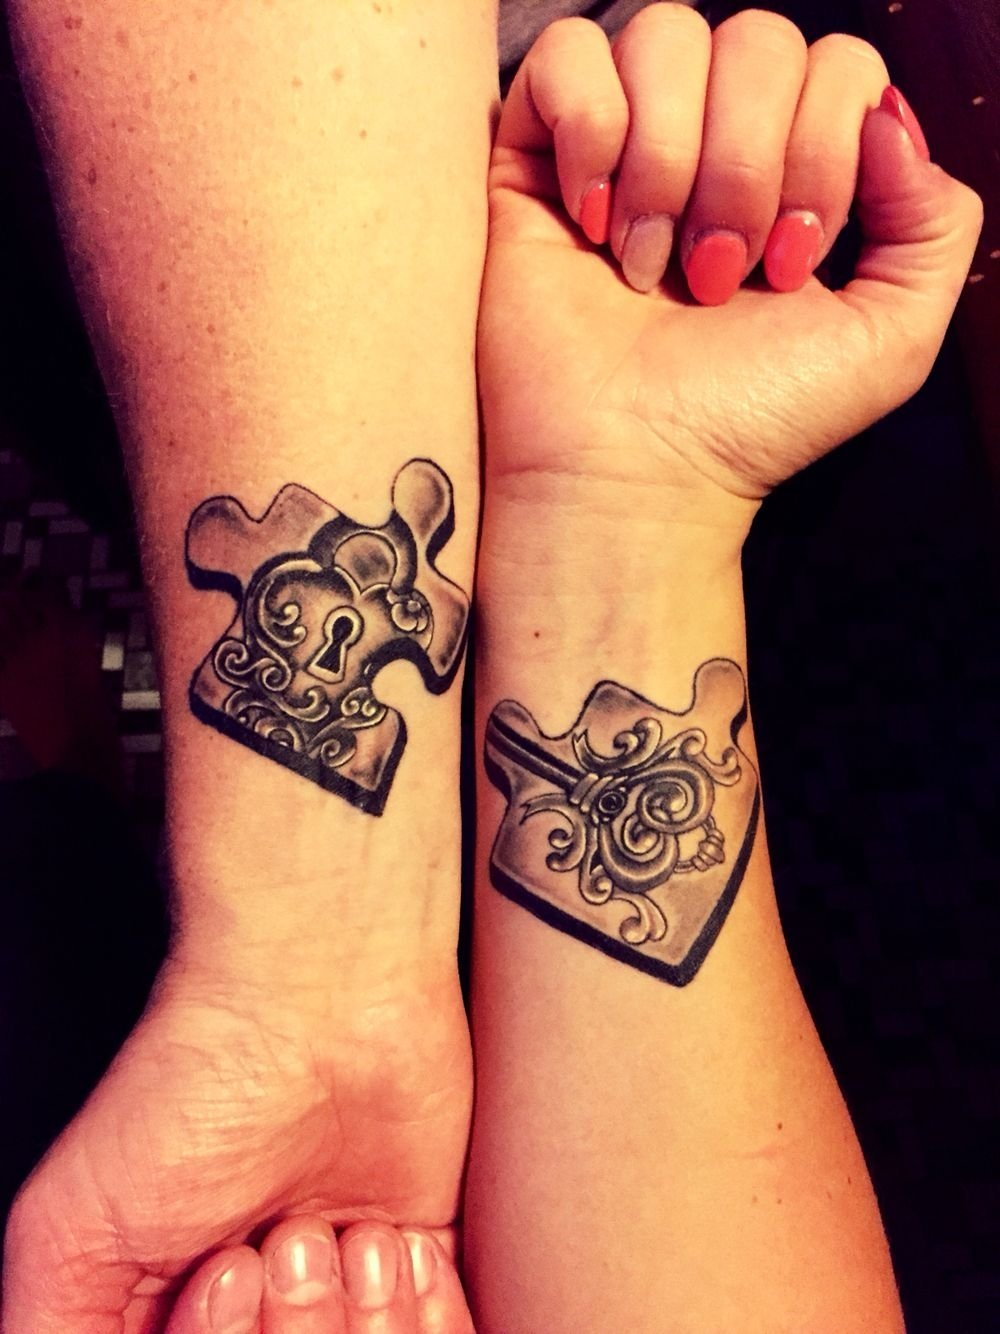 10 Most Popular Matching Tattoos For Couples Ideas 30 matching tattoo ideas for couples daughter tattoos tattoo and 3